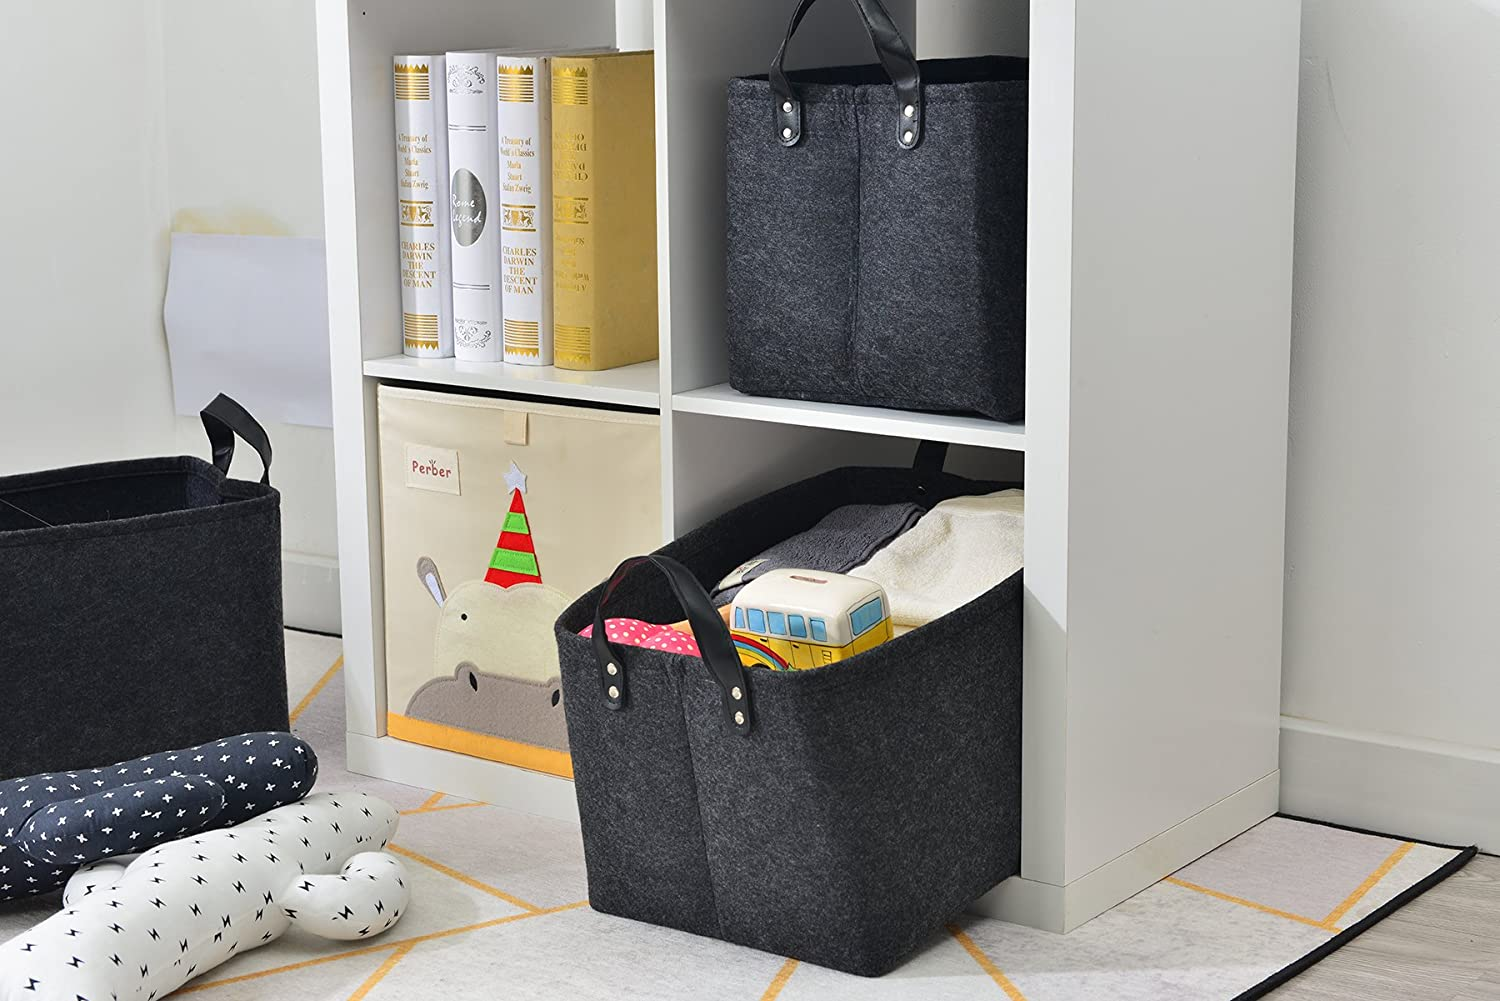 Foldable Felt Fabric Storage Box Cubes Containers with Leather Handles- Large Organizer for Nursery Toys,Kids Room,Towels,Clothes Black (15.5 11.4 10) 3-Pack Collapsible Storage Basket Bins